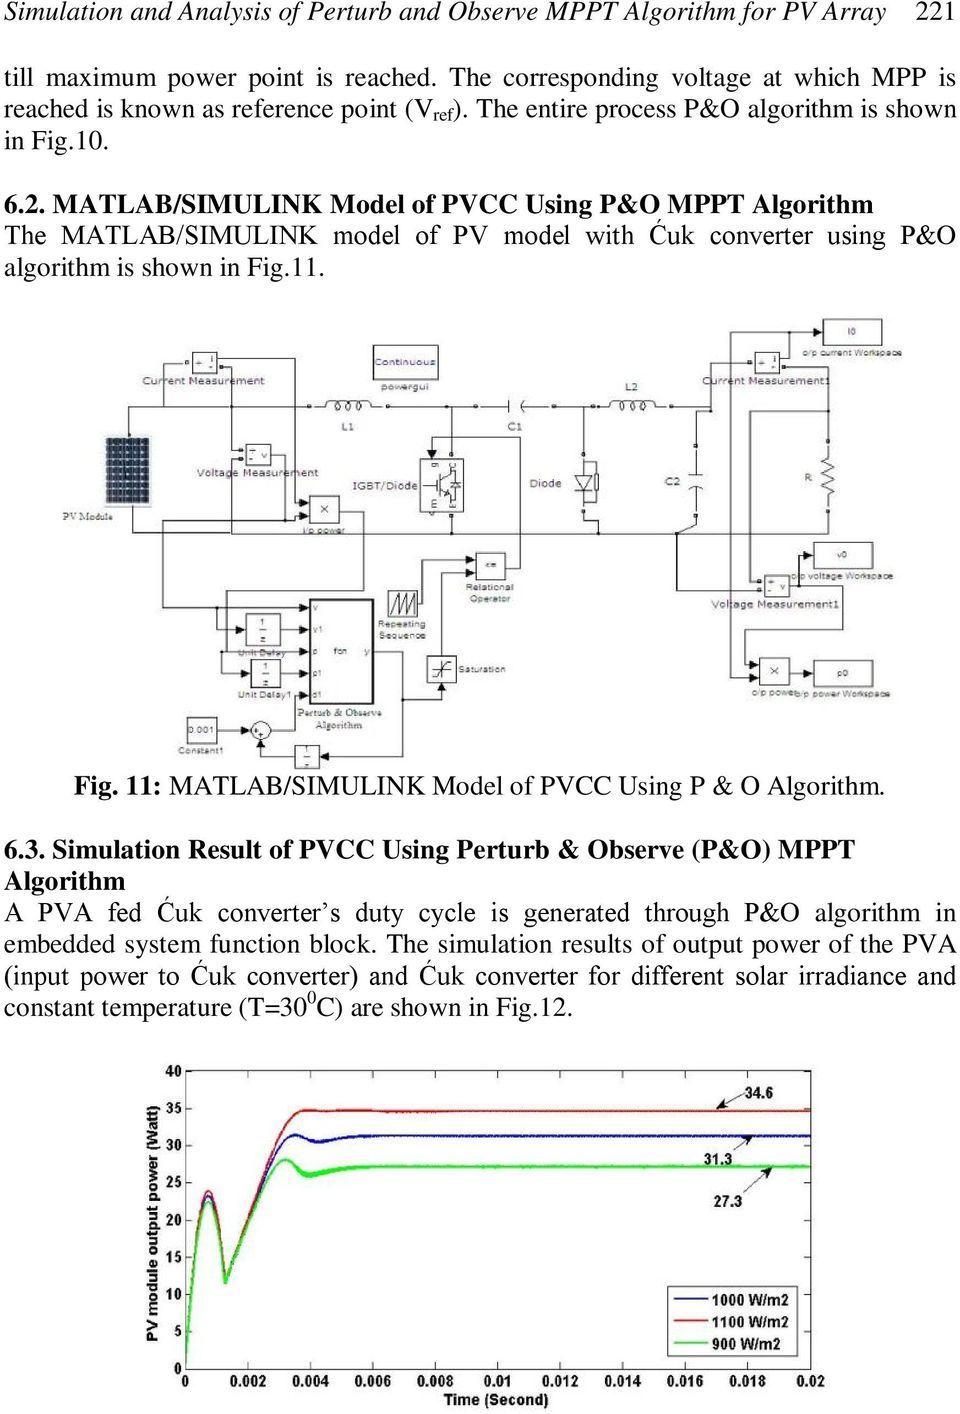 MATLAB/SIMULINK Model of PVCC Using P&O MPPT Algorithm The MATLAB/SIMULINK model of PV model with Ćuk converter using P&O algorithm is shown in Fig.